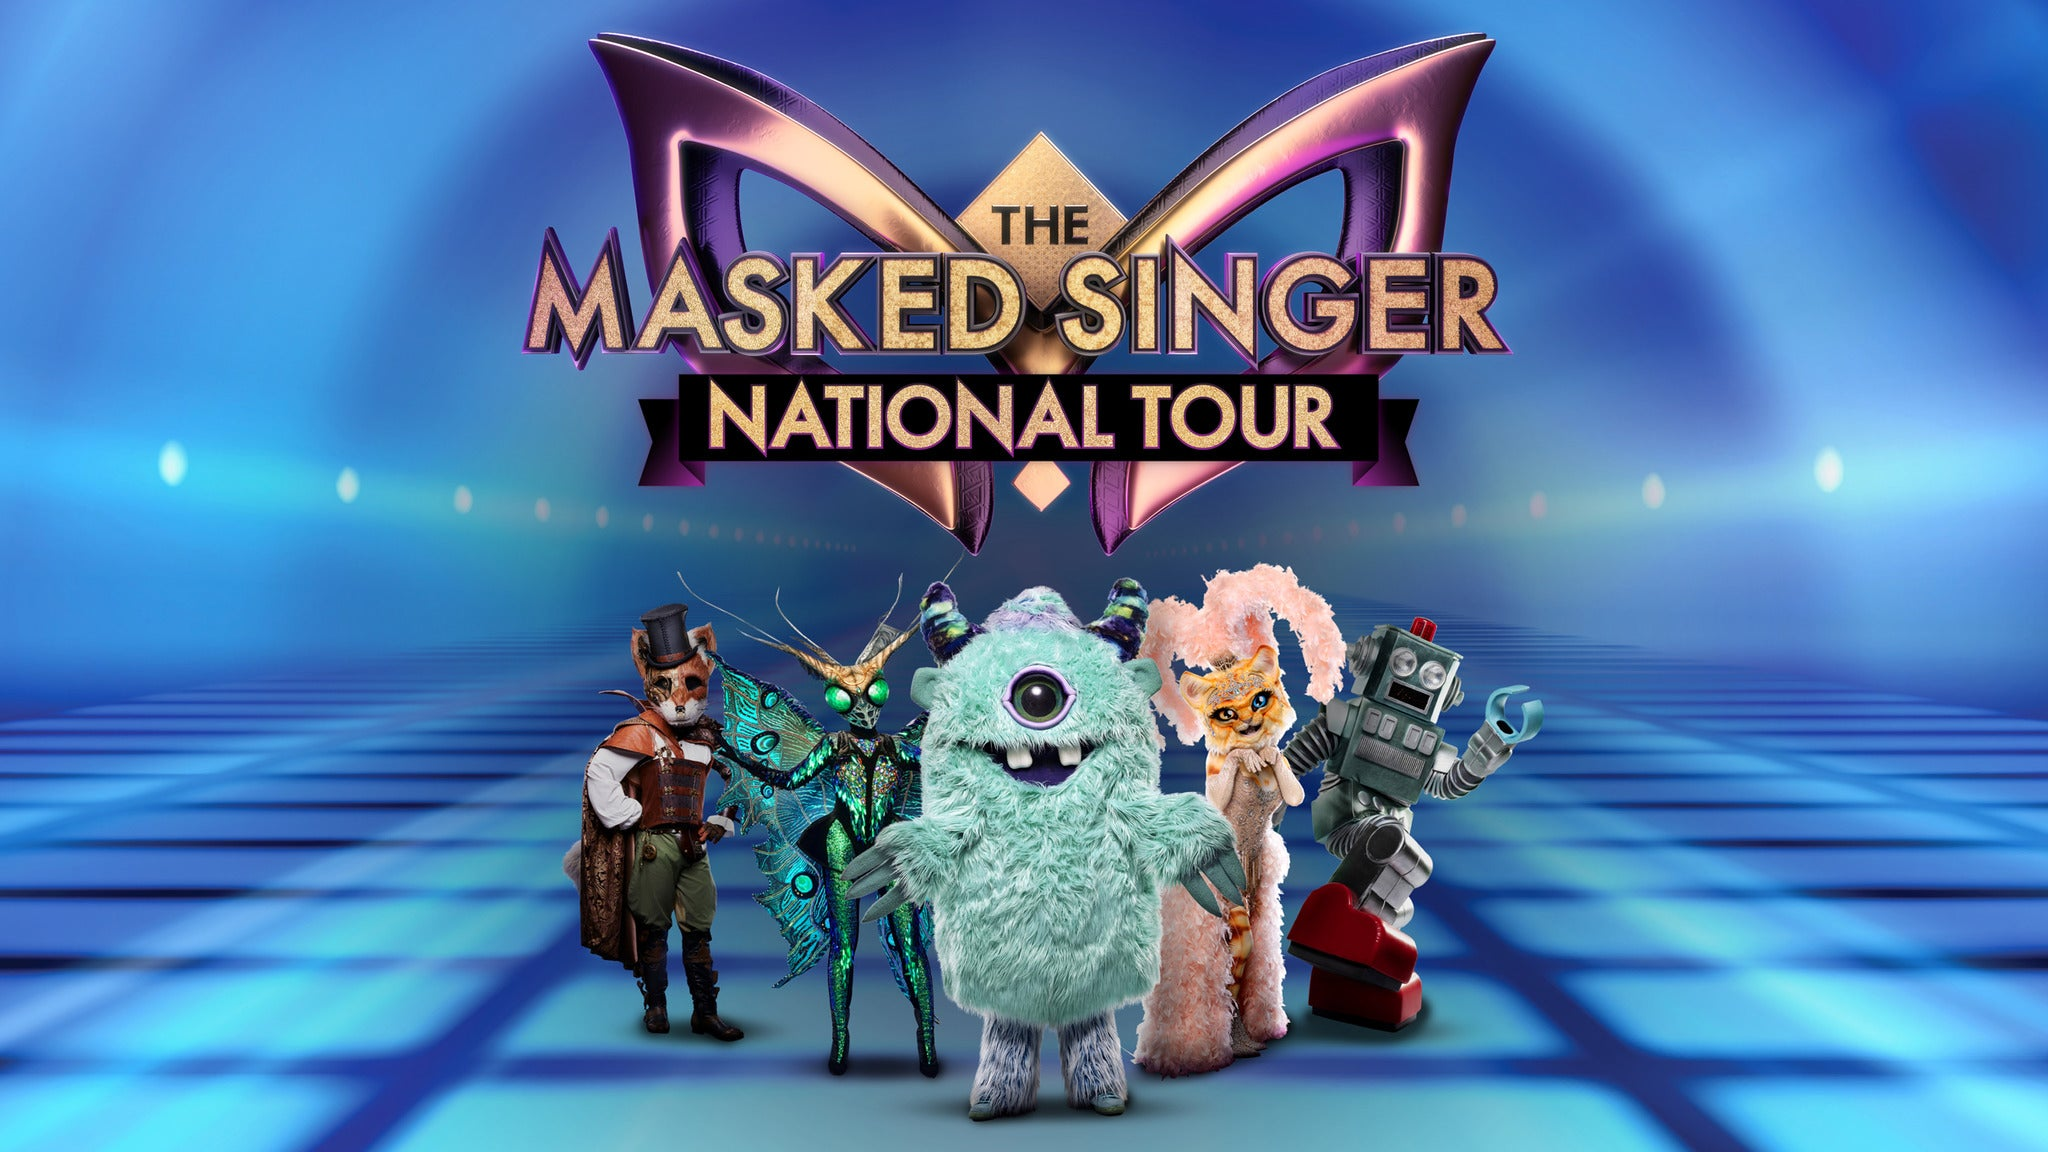 The Masked Singer National Tour at Benedum Center